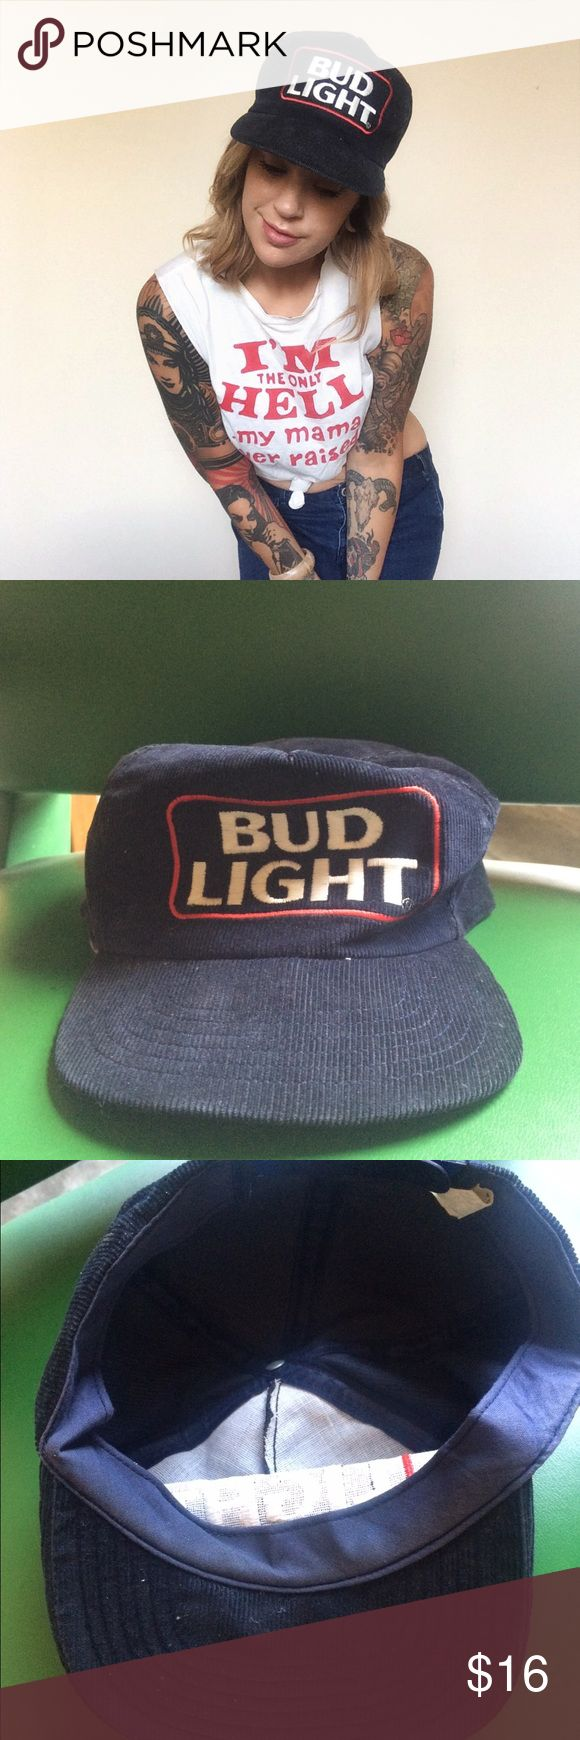 Bud Lite vintage corduroy hat This hat is just the best. Vintage corduroy Bud Lite hat in all its glory. Excellent condition, perfect for summer BBQs and parties. Get it before it's gone! Vintage Accessories Hats